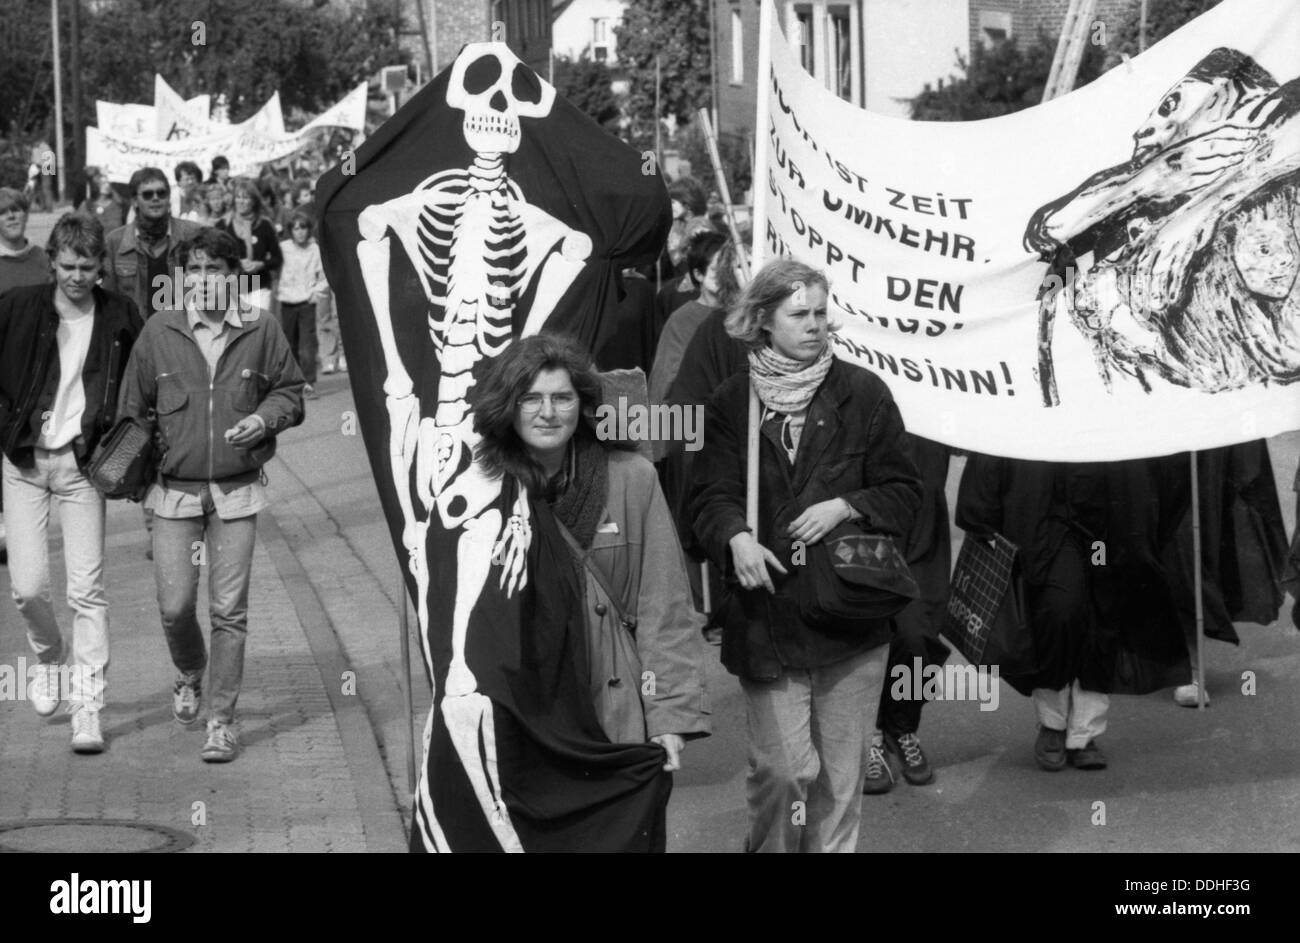 a women s peace organized women of various organizations of a women s peace organized women of various organizations of the peace movement in the lower saxon hildesheim 29 years ago